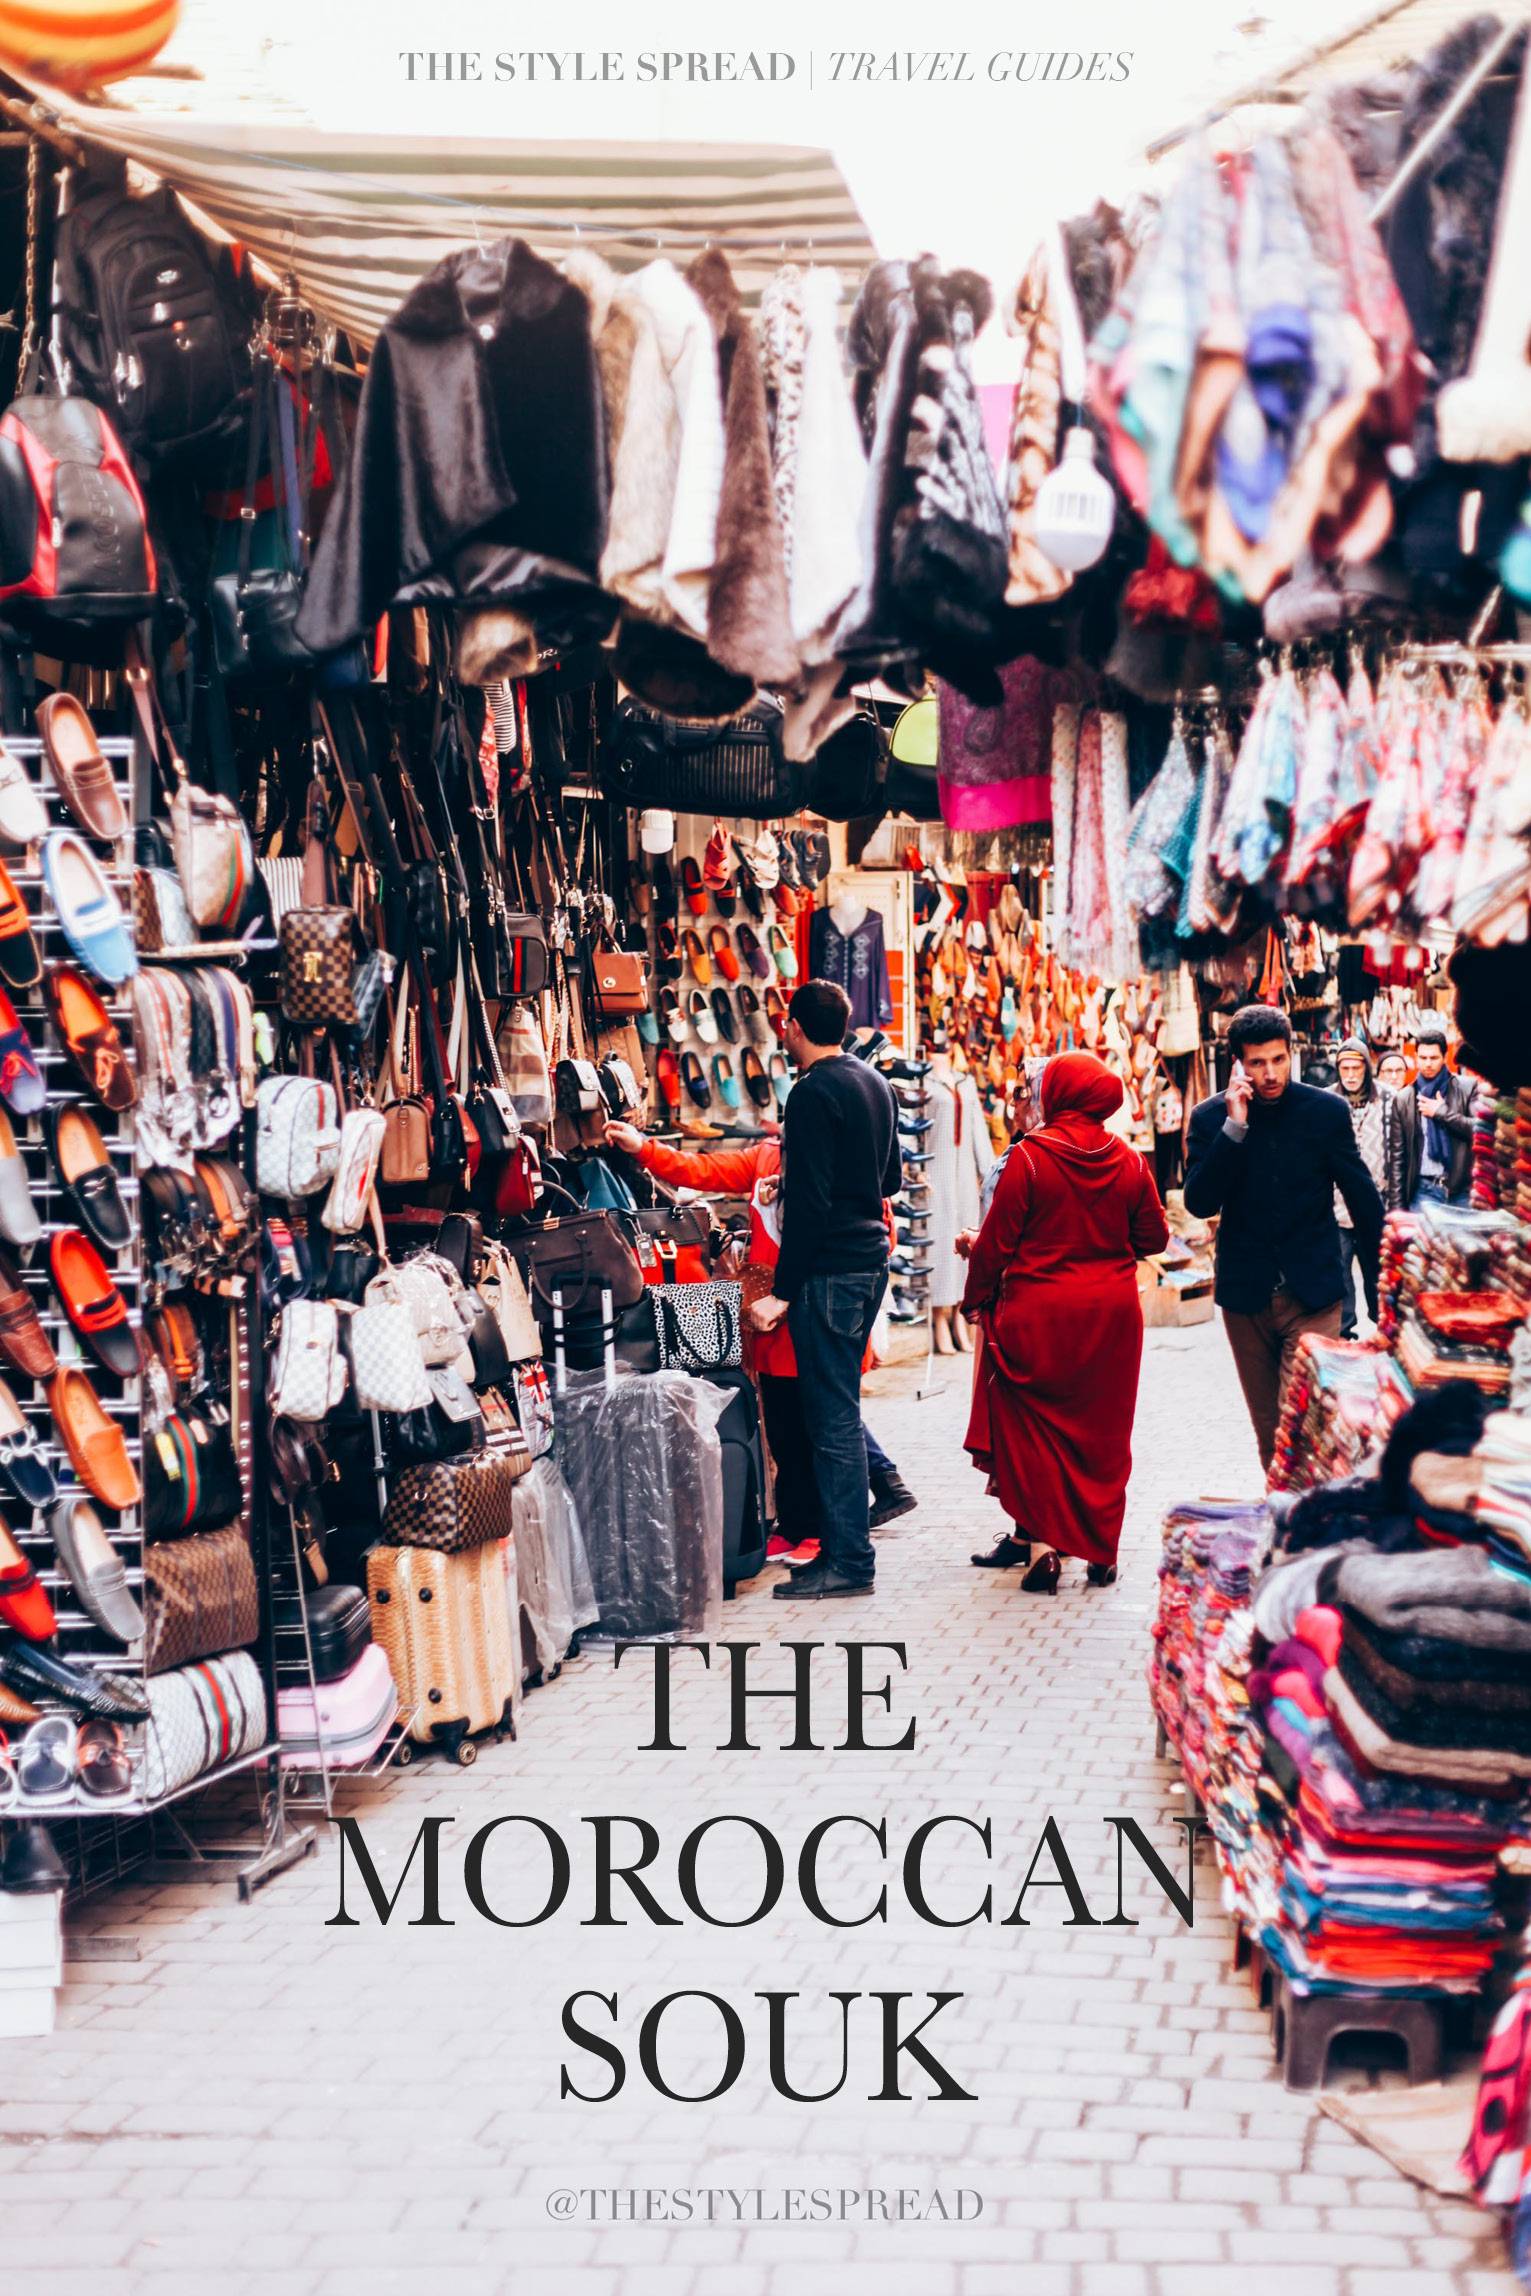 How to Shop A Moroccan Souk